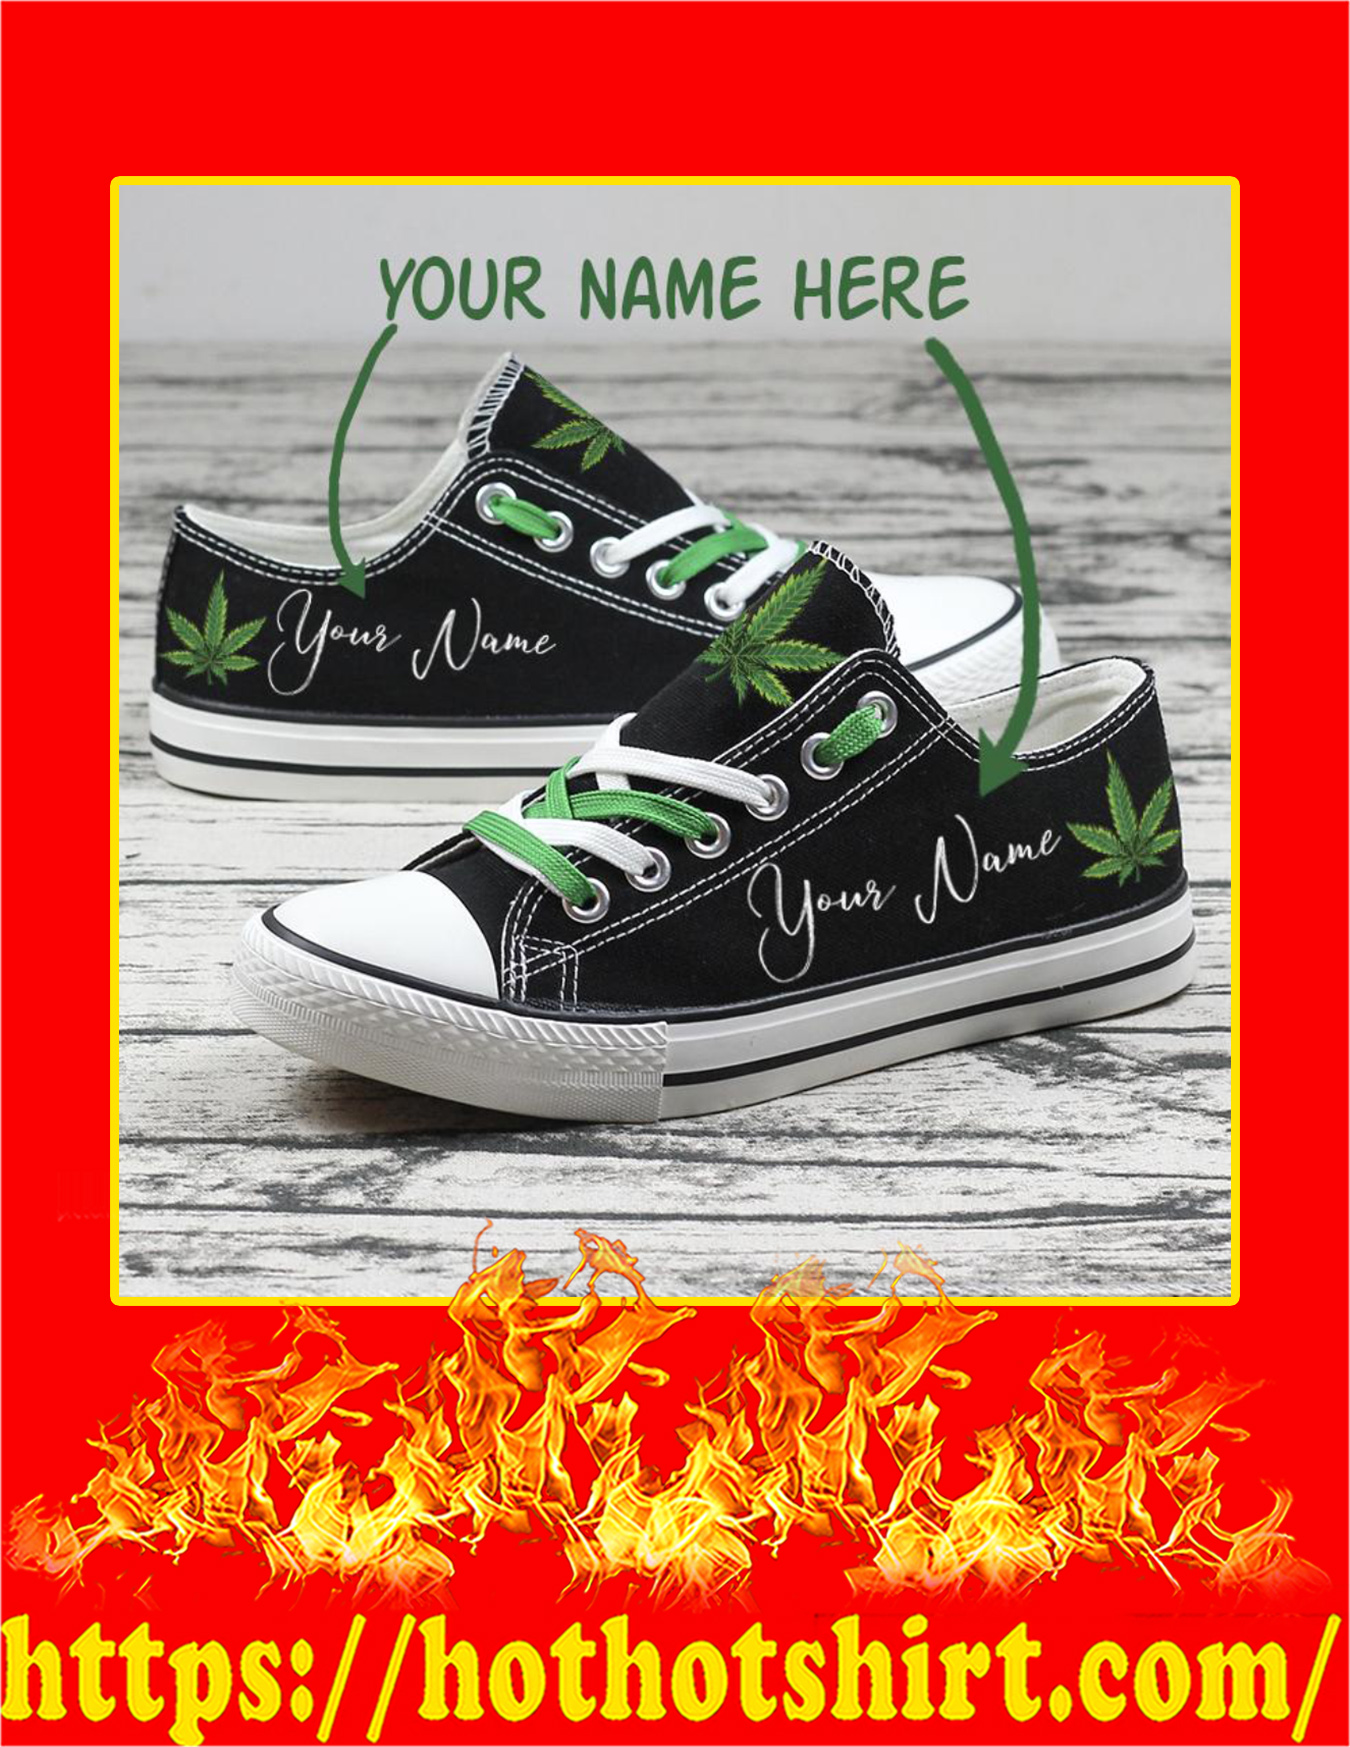 Weed Cannabis Custom Name Personalized Low Top Shoes - Pic 1